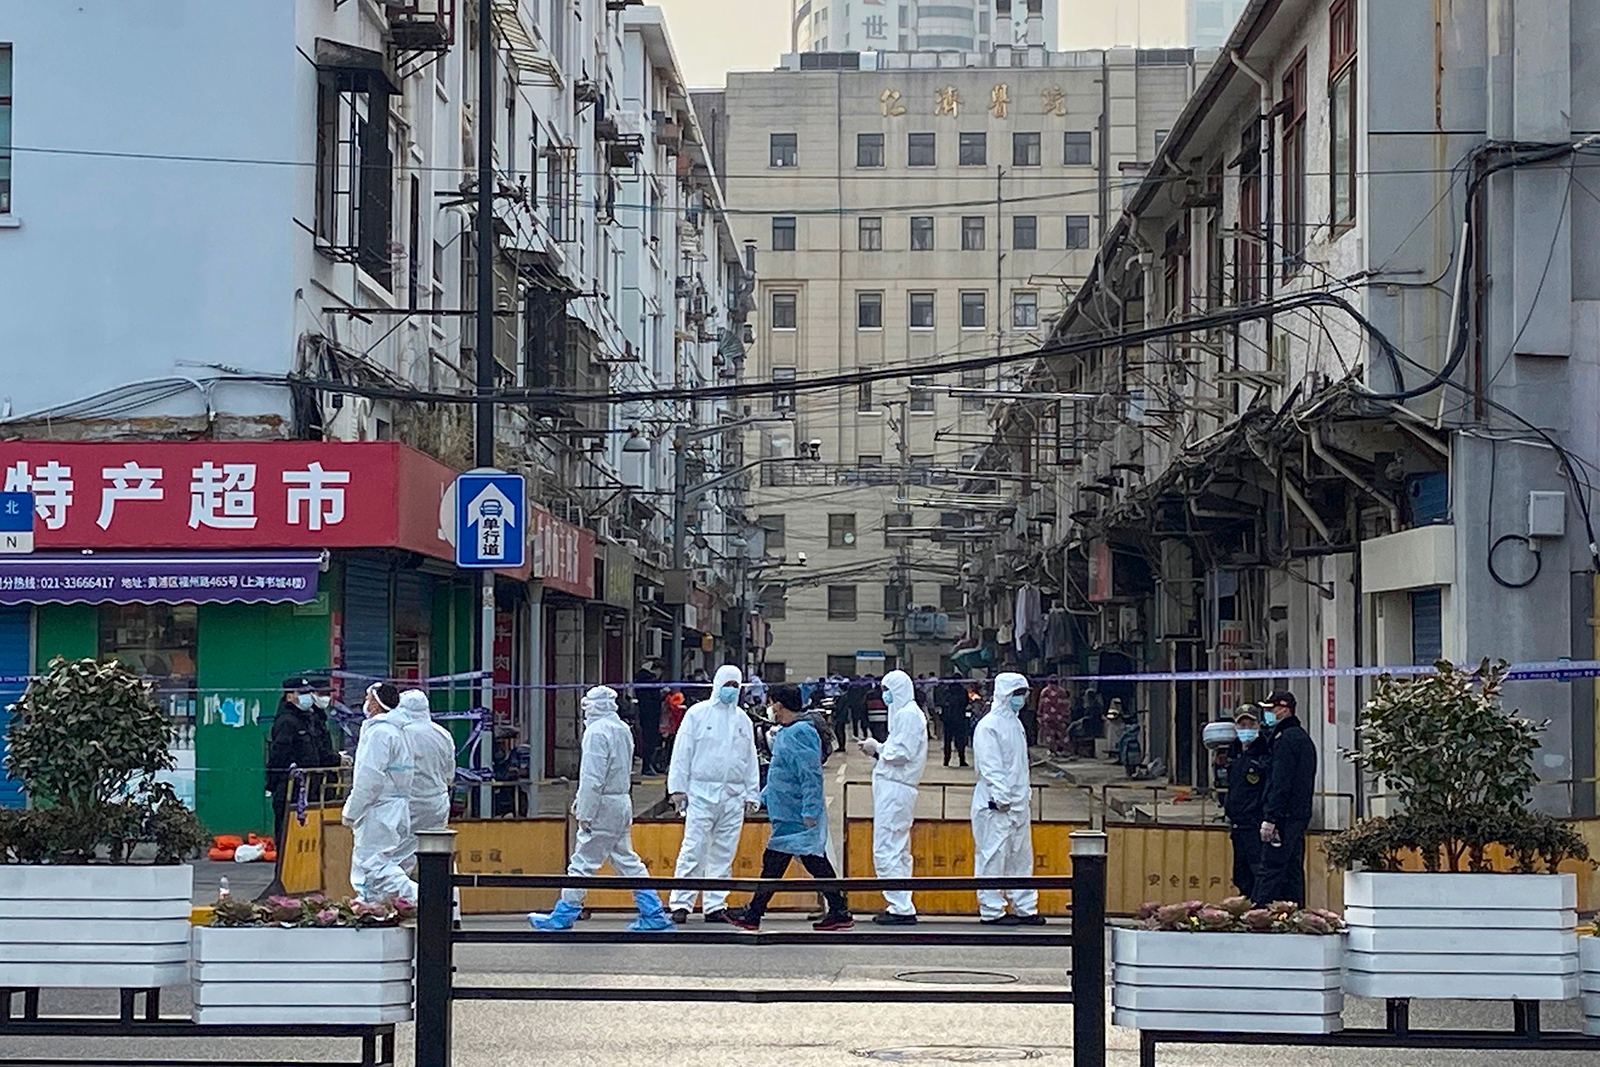 People in protective suits cordon off an area around a residential neighborhood in Shanghai's Huangpu district in China, on January 21.